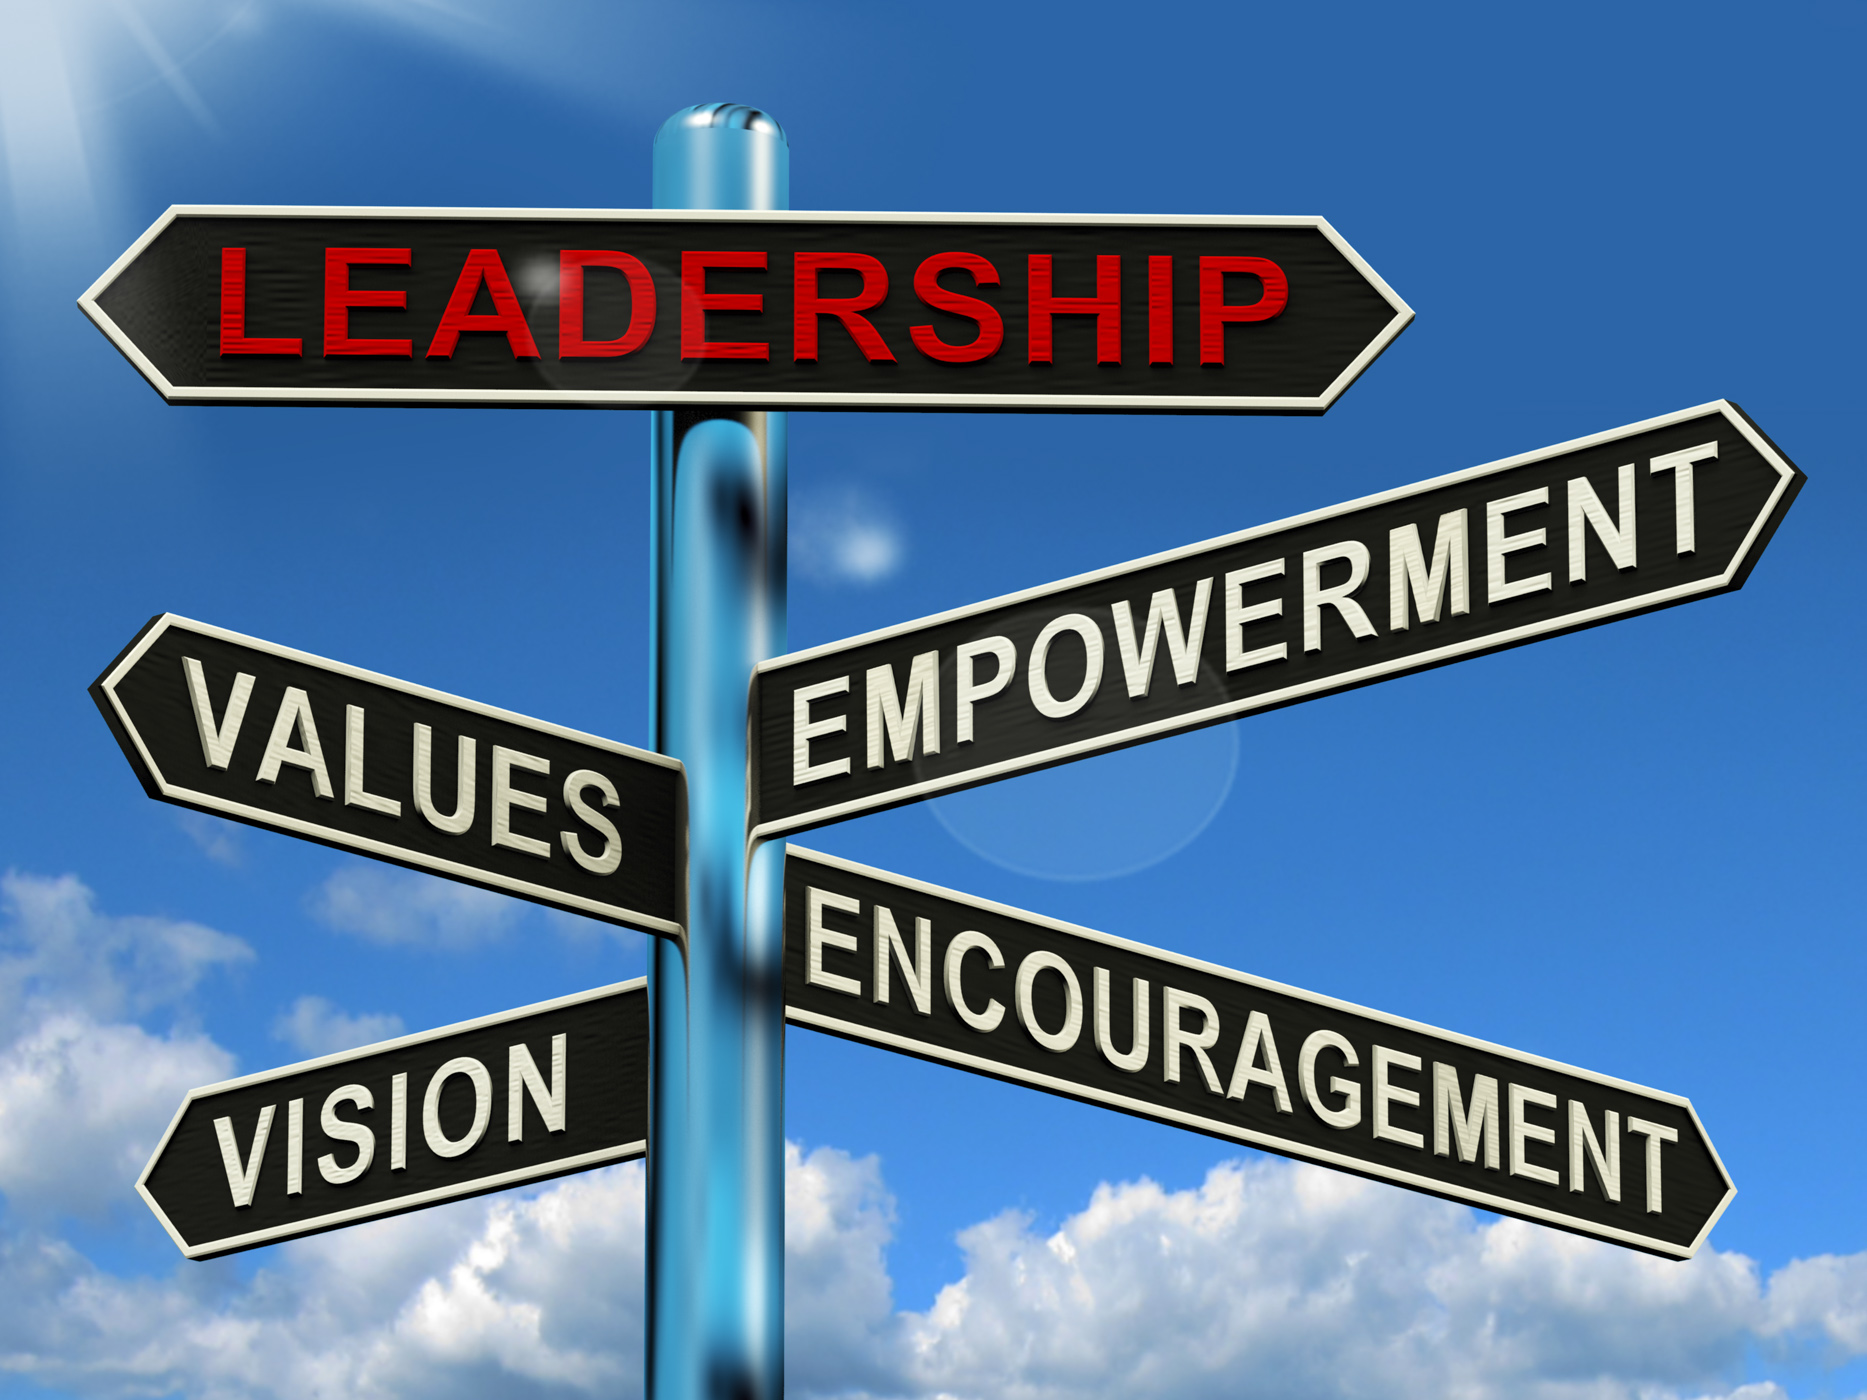 Leadership signpost showing vision values empowerment and encouragemen photo